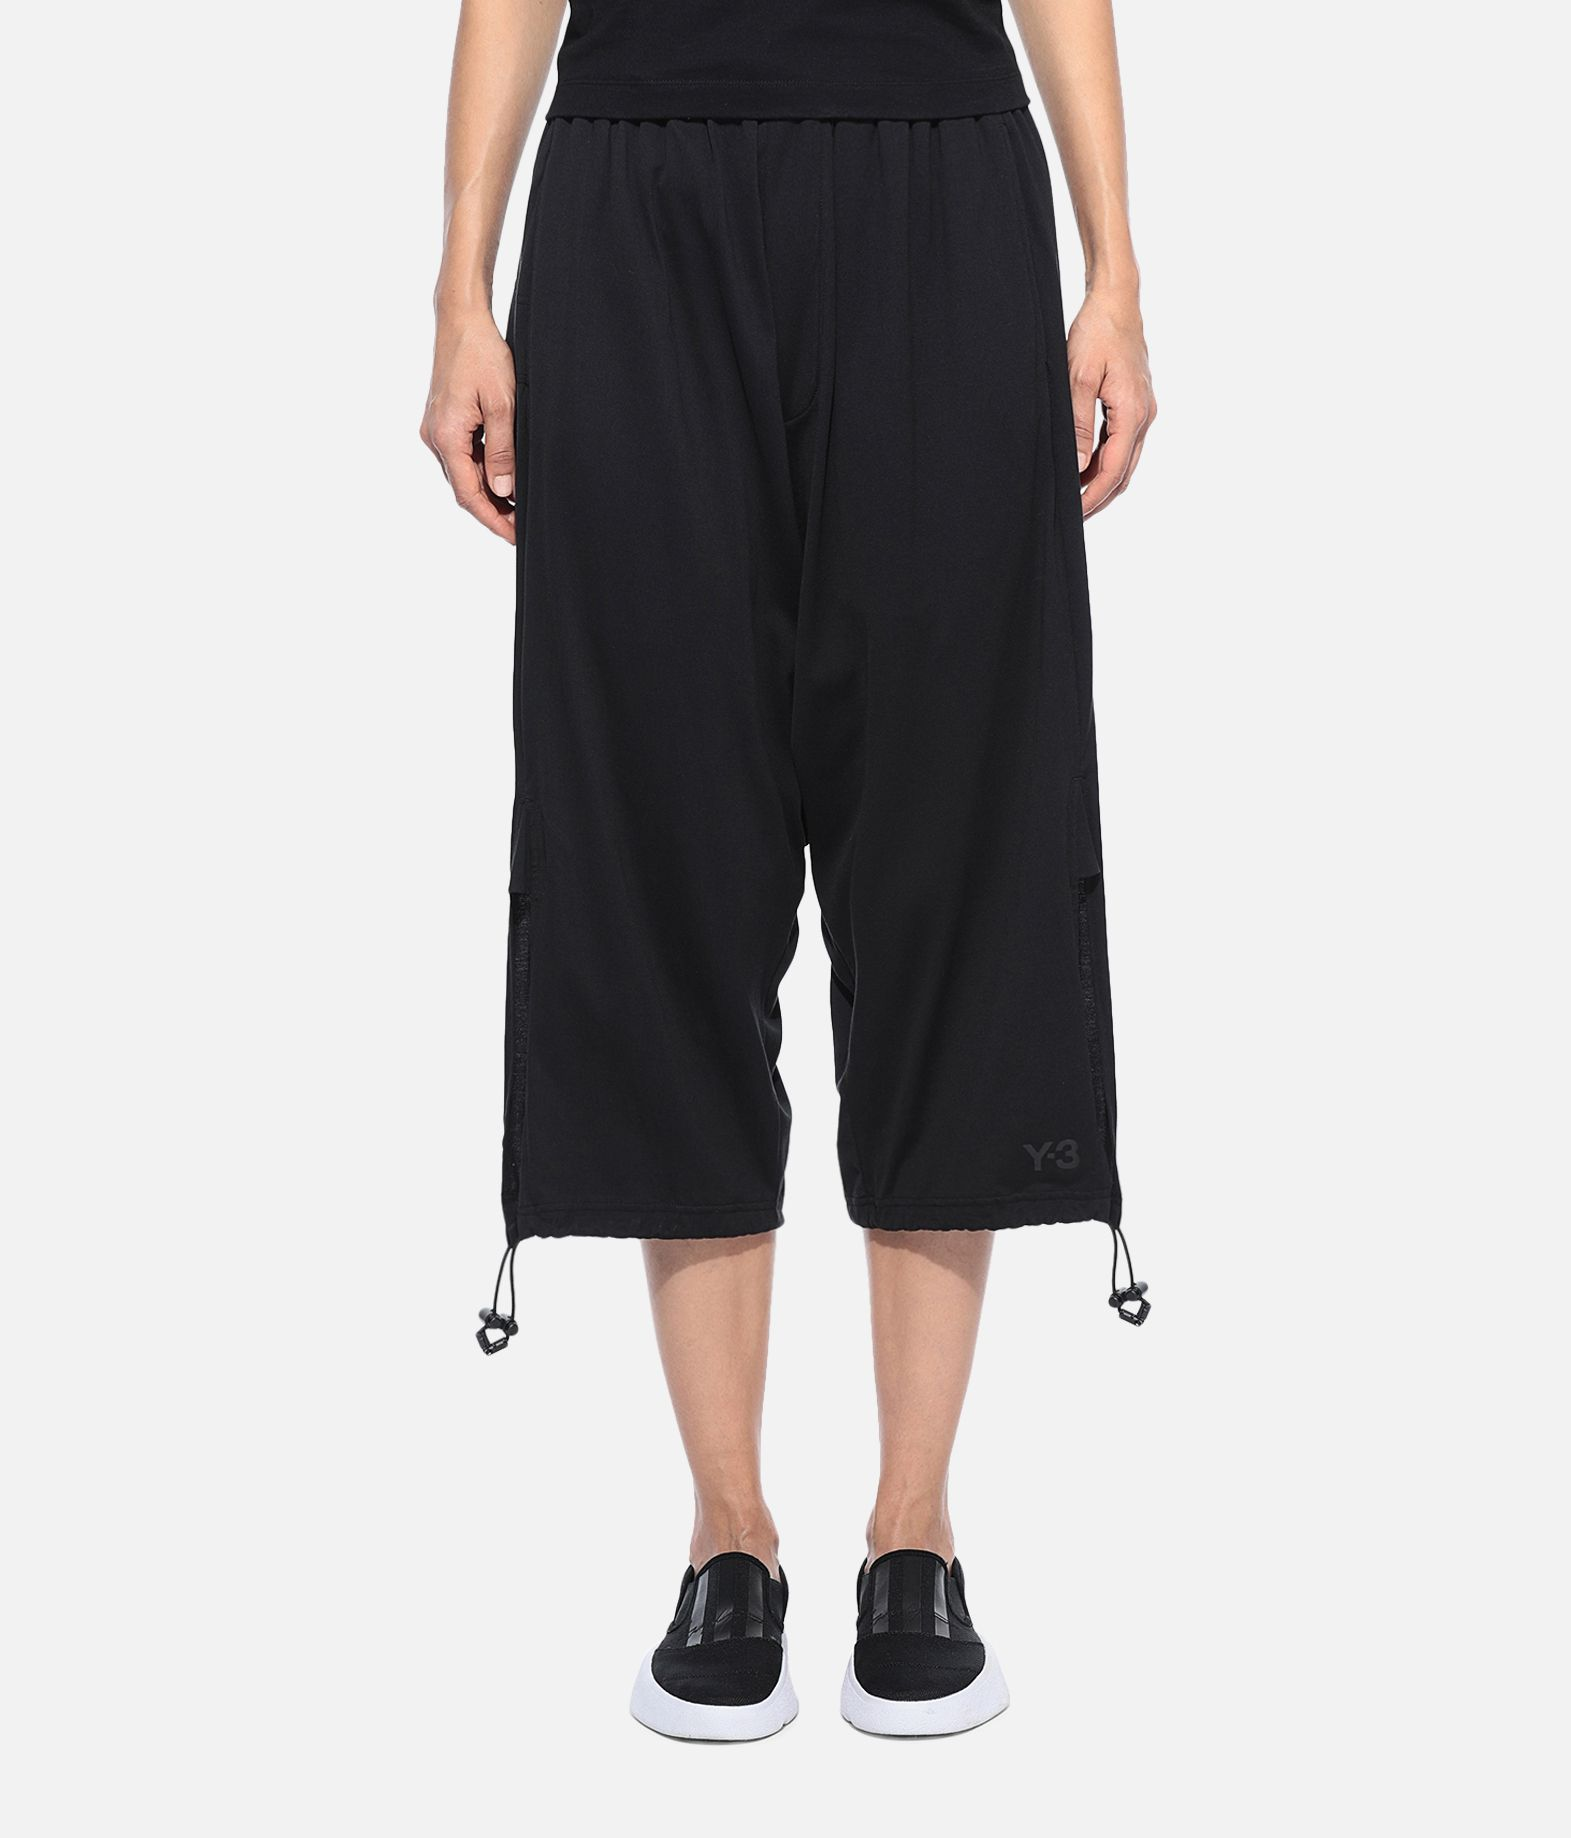 Y-3 Y-3 Drawstring 3/4 Pants  Cropped pant Woman r